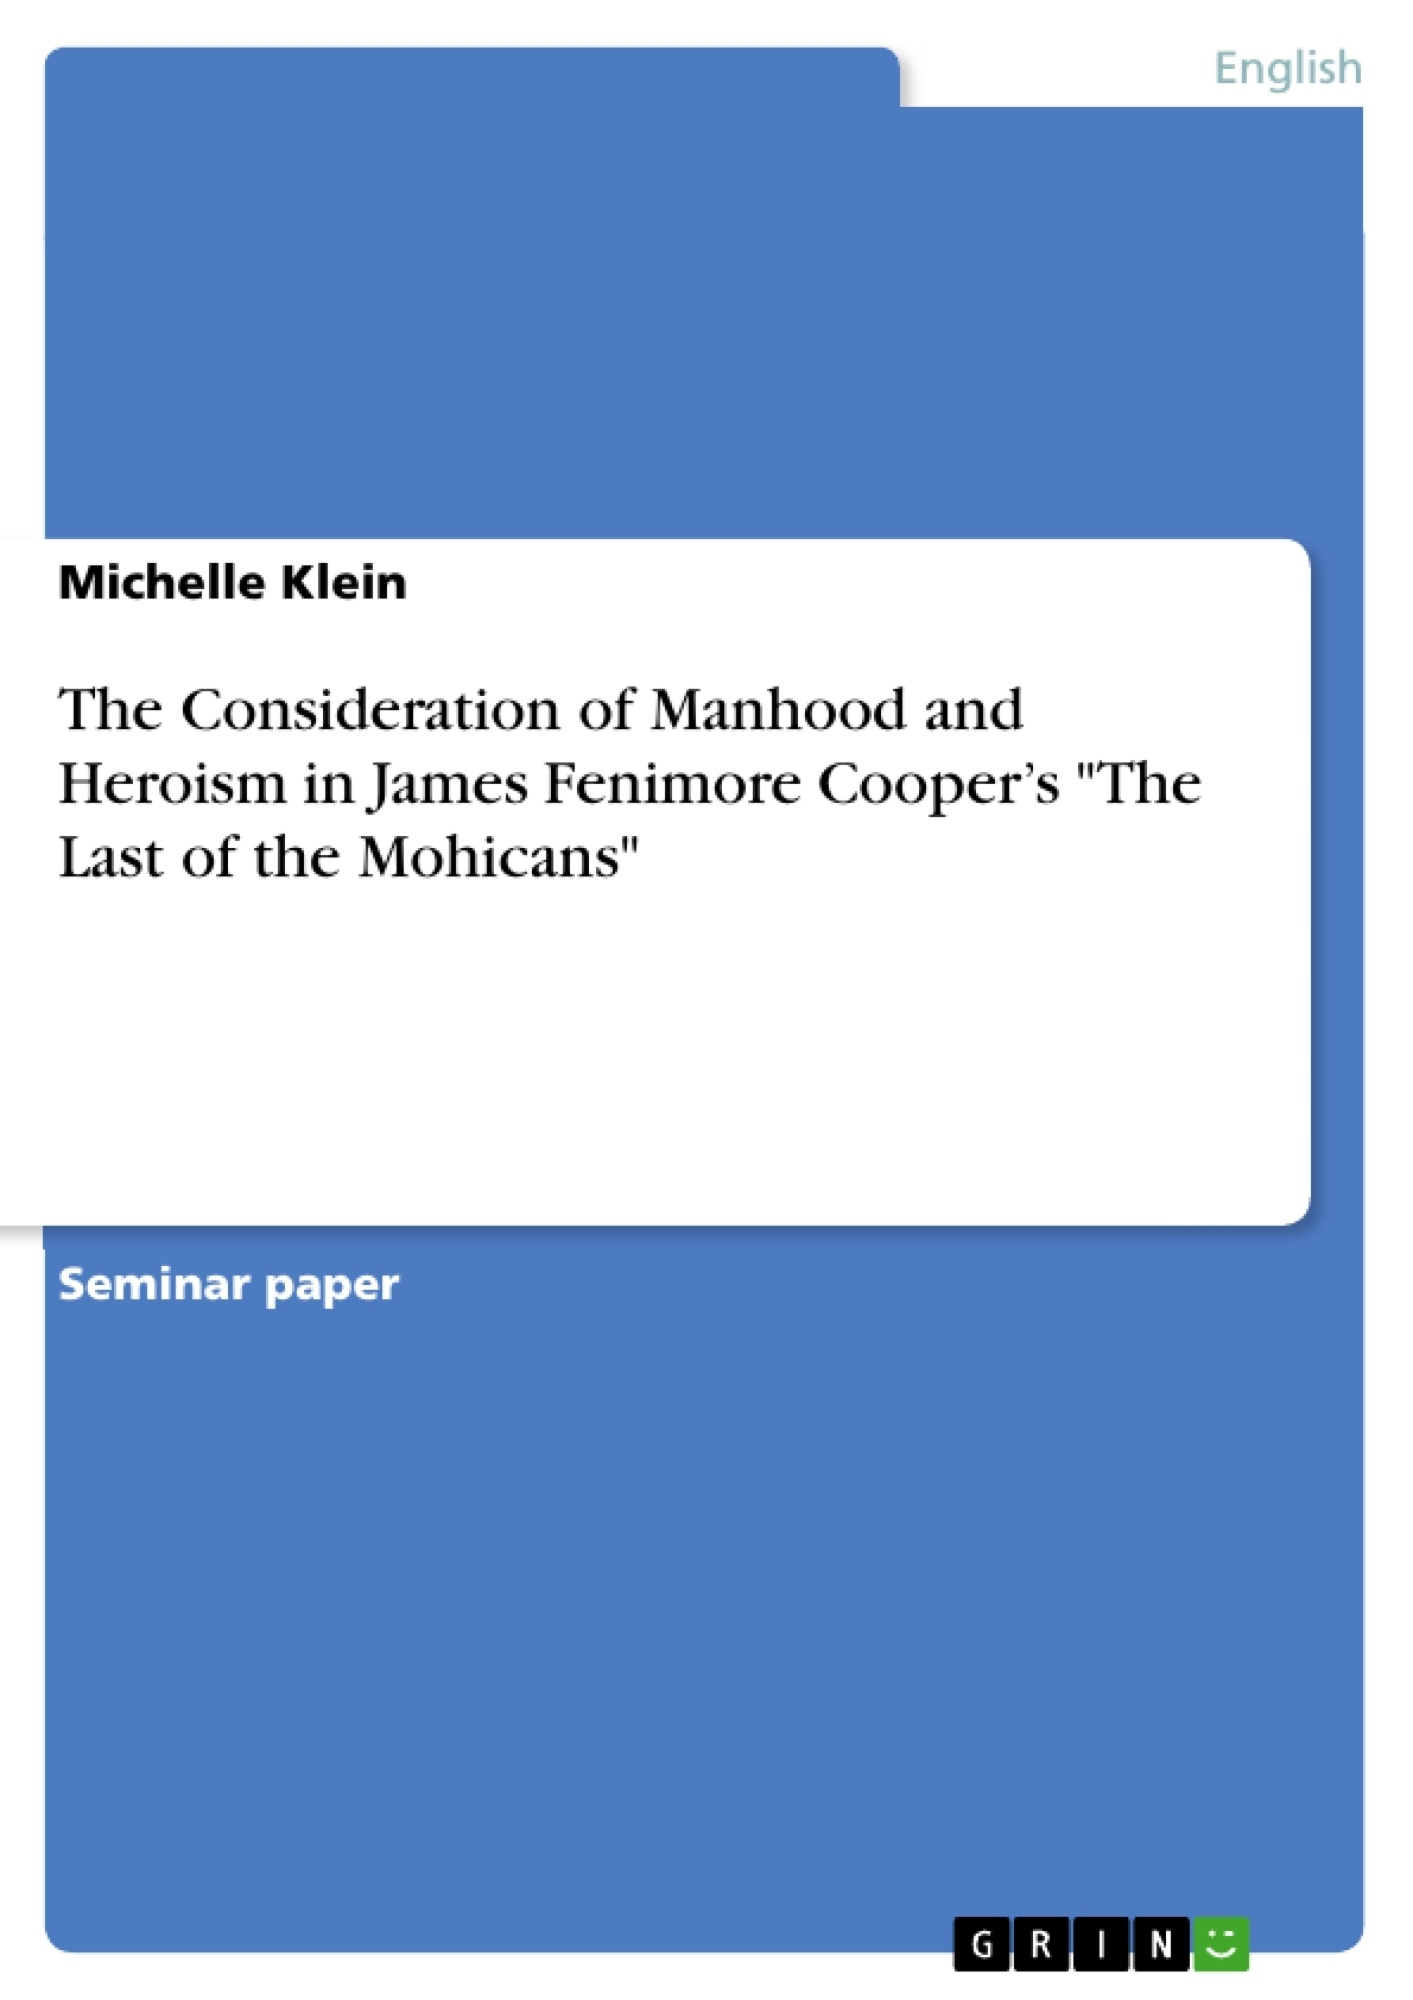 """Title: The Consideration of Manhood and Heroism in James Fenimore Cooper's """"The Last of the Mohicans"""""""